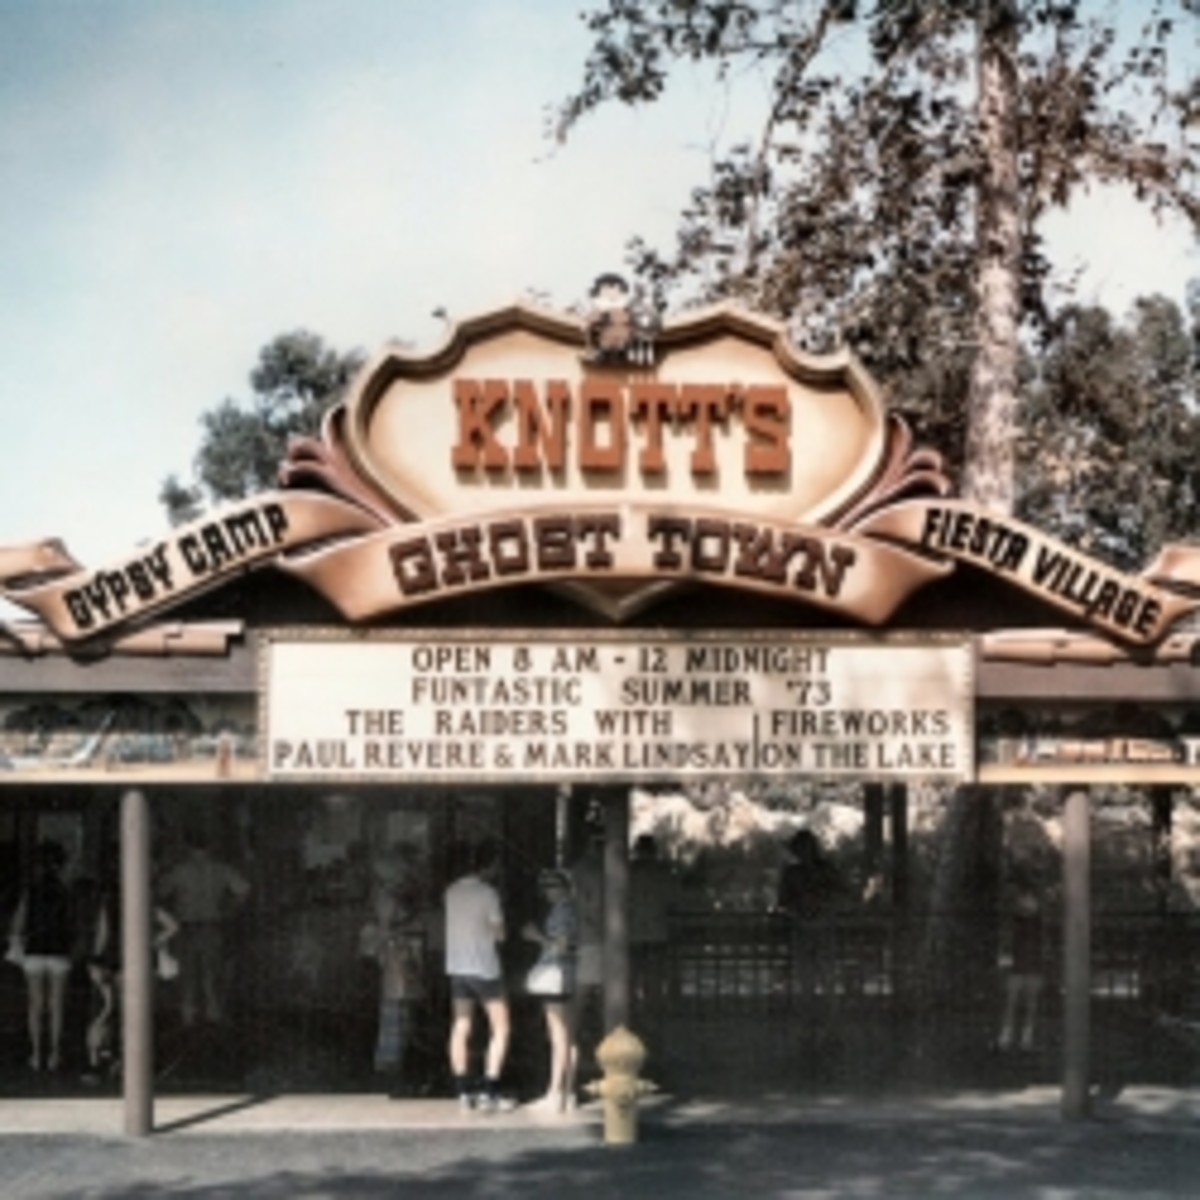 Knott's Berry Farm - A retrospective